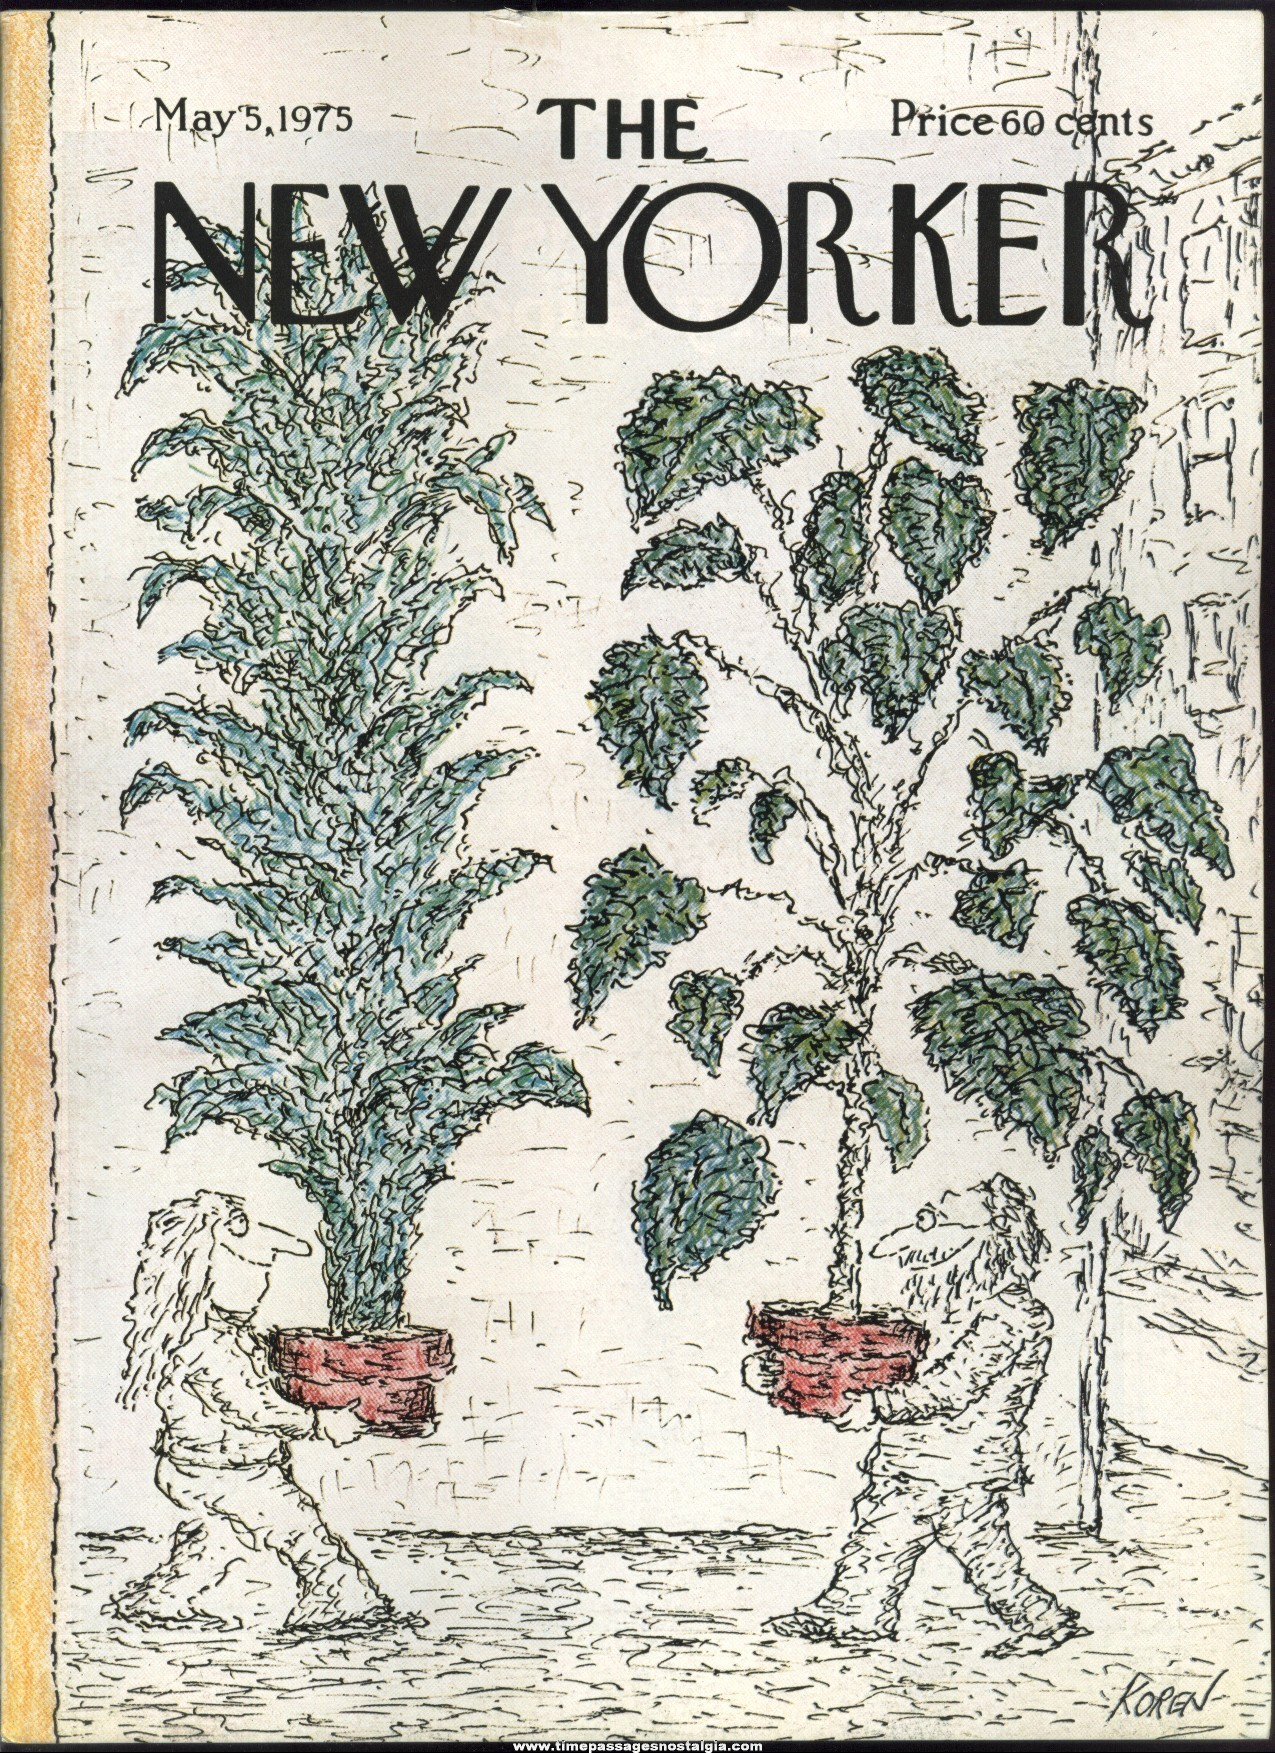 New Yorker Magazine - May 5, 1975 - Cover by Edward Koren